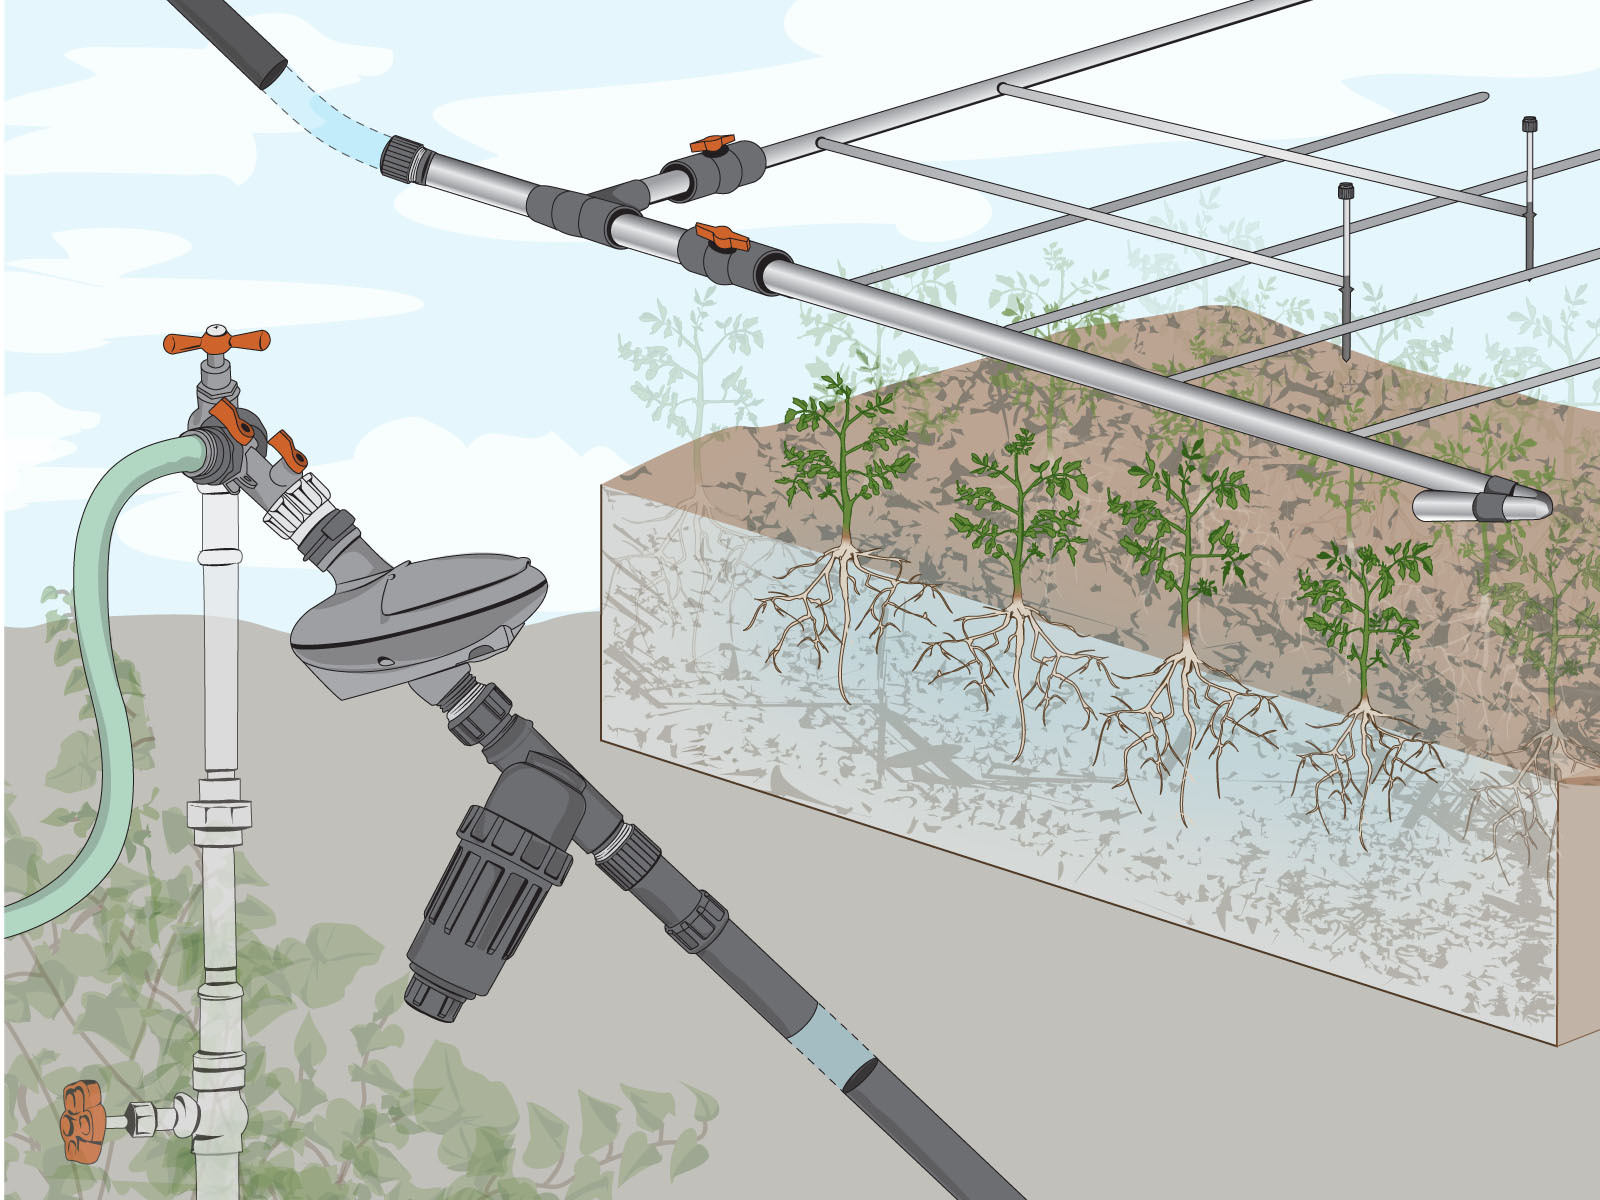 How To Design An Irrigation System At Home home sprinkler system design home irrigation system diagram how to cheap home irrigation design Drip Irrigation Basics